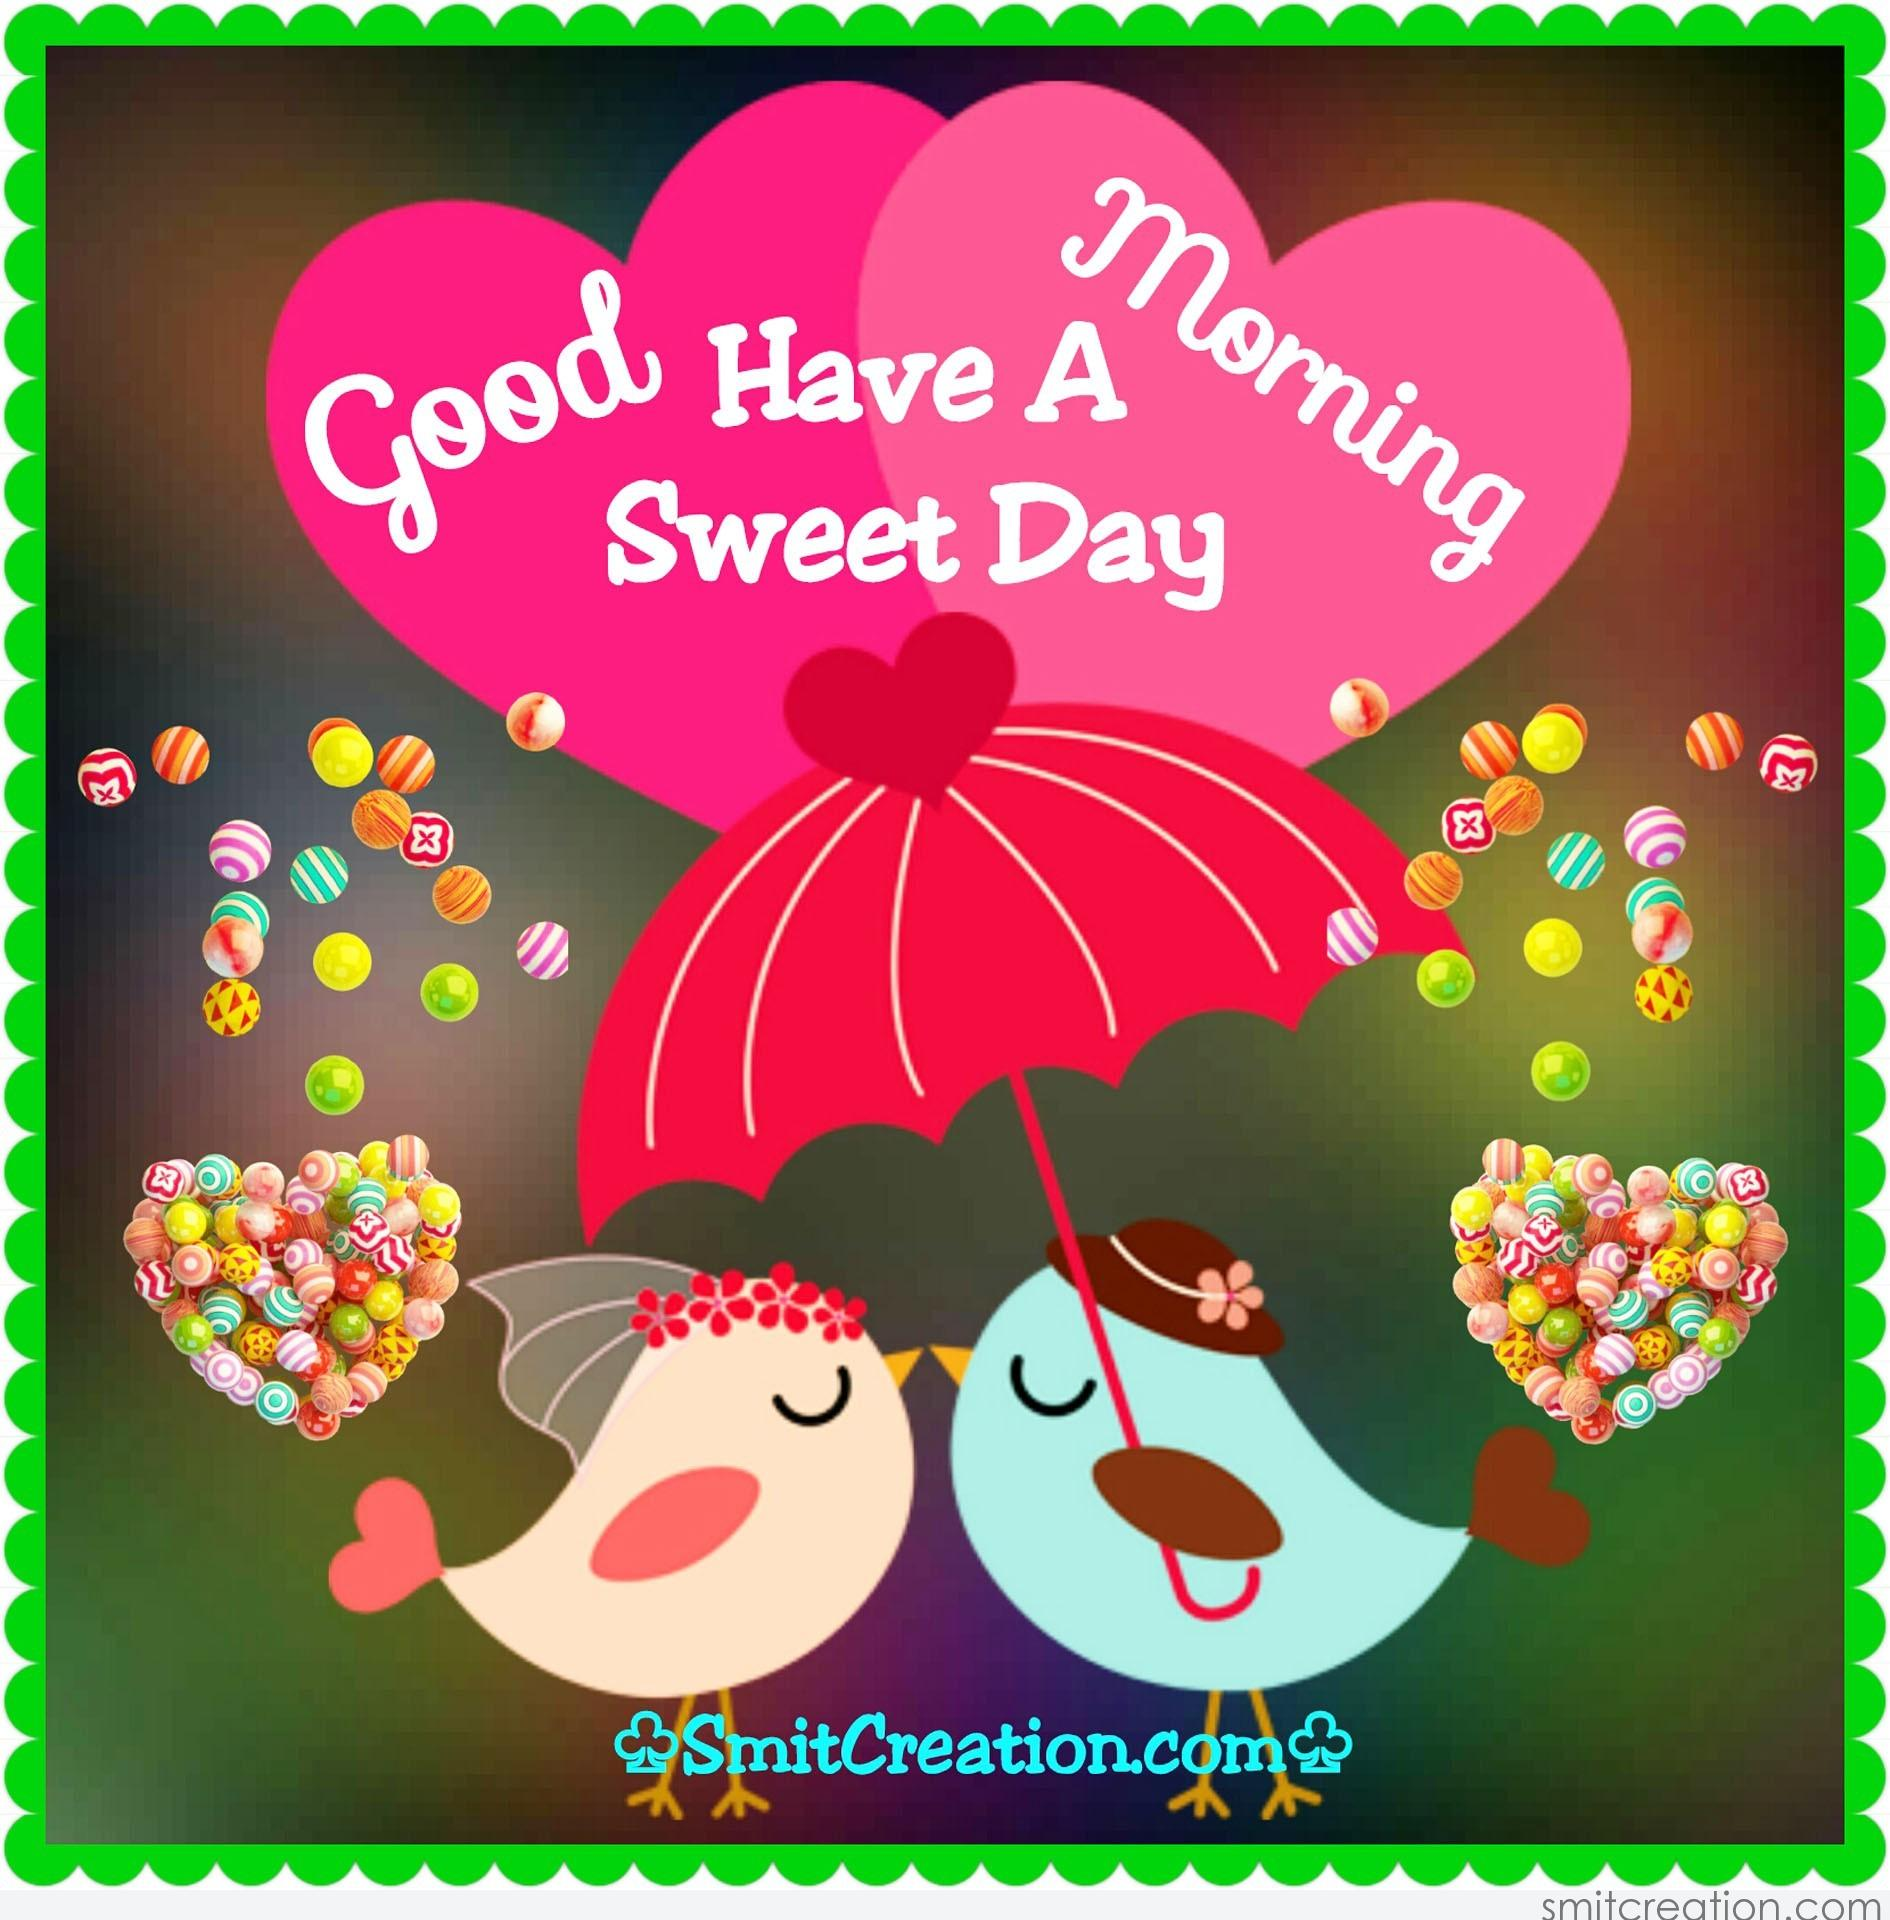 good morning have a sweet day   smitcreation